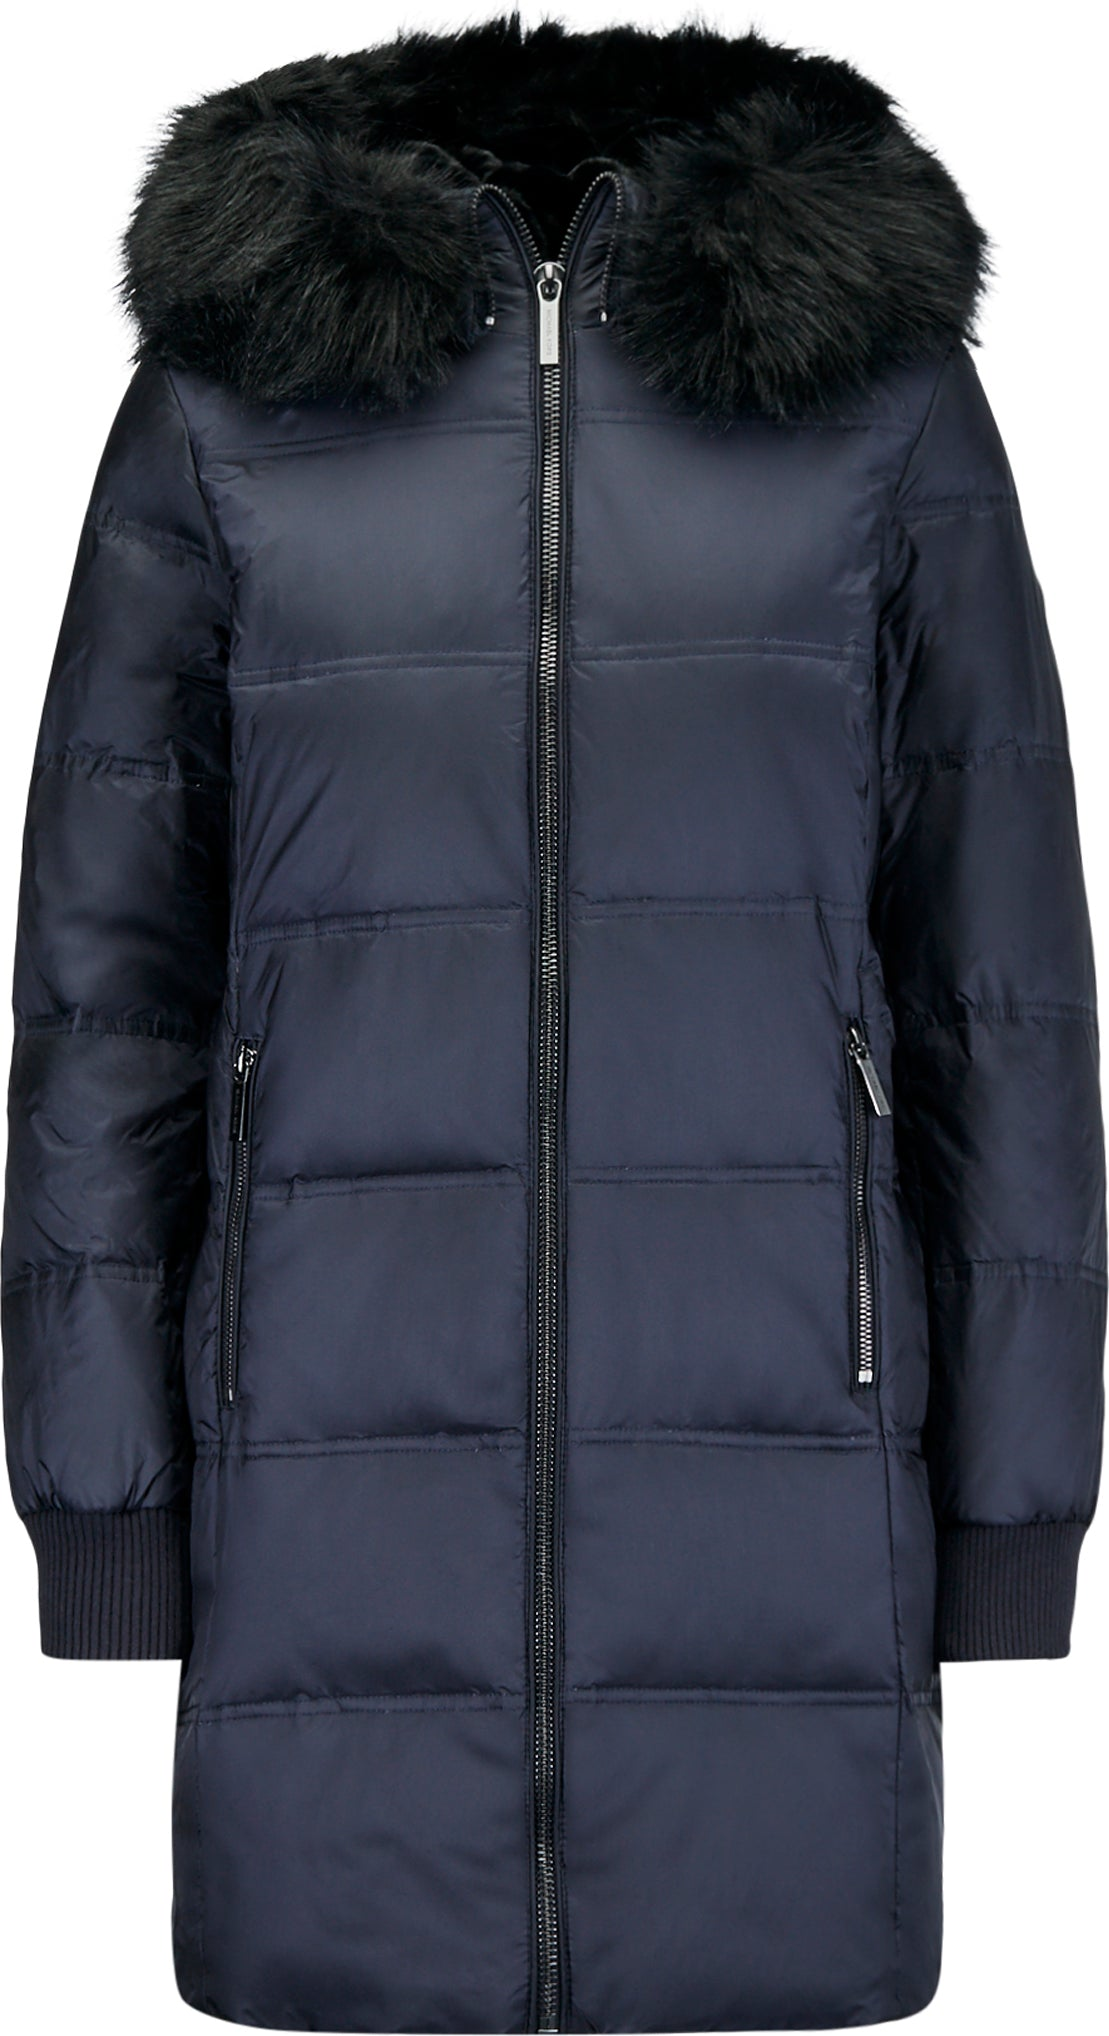 5ee2055ae01 Michael Kors Quilted Nylon And Faux Fur Puffer - Women's | The Last Hunt